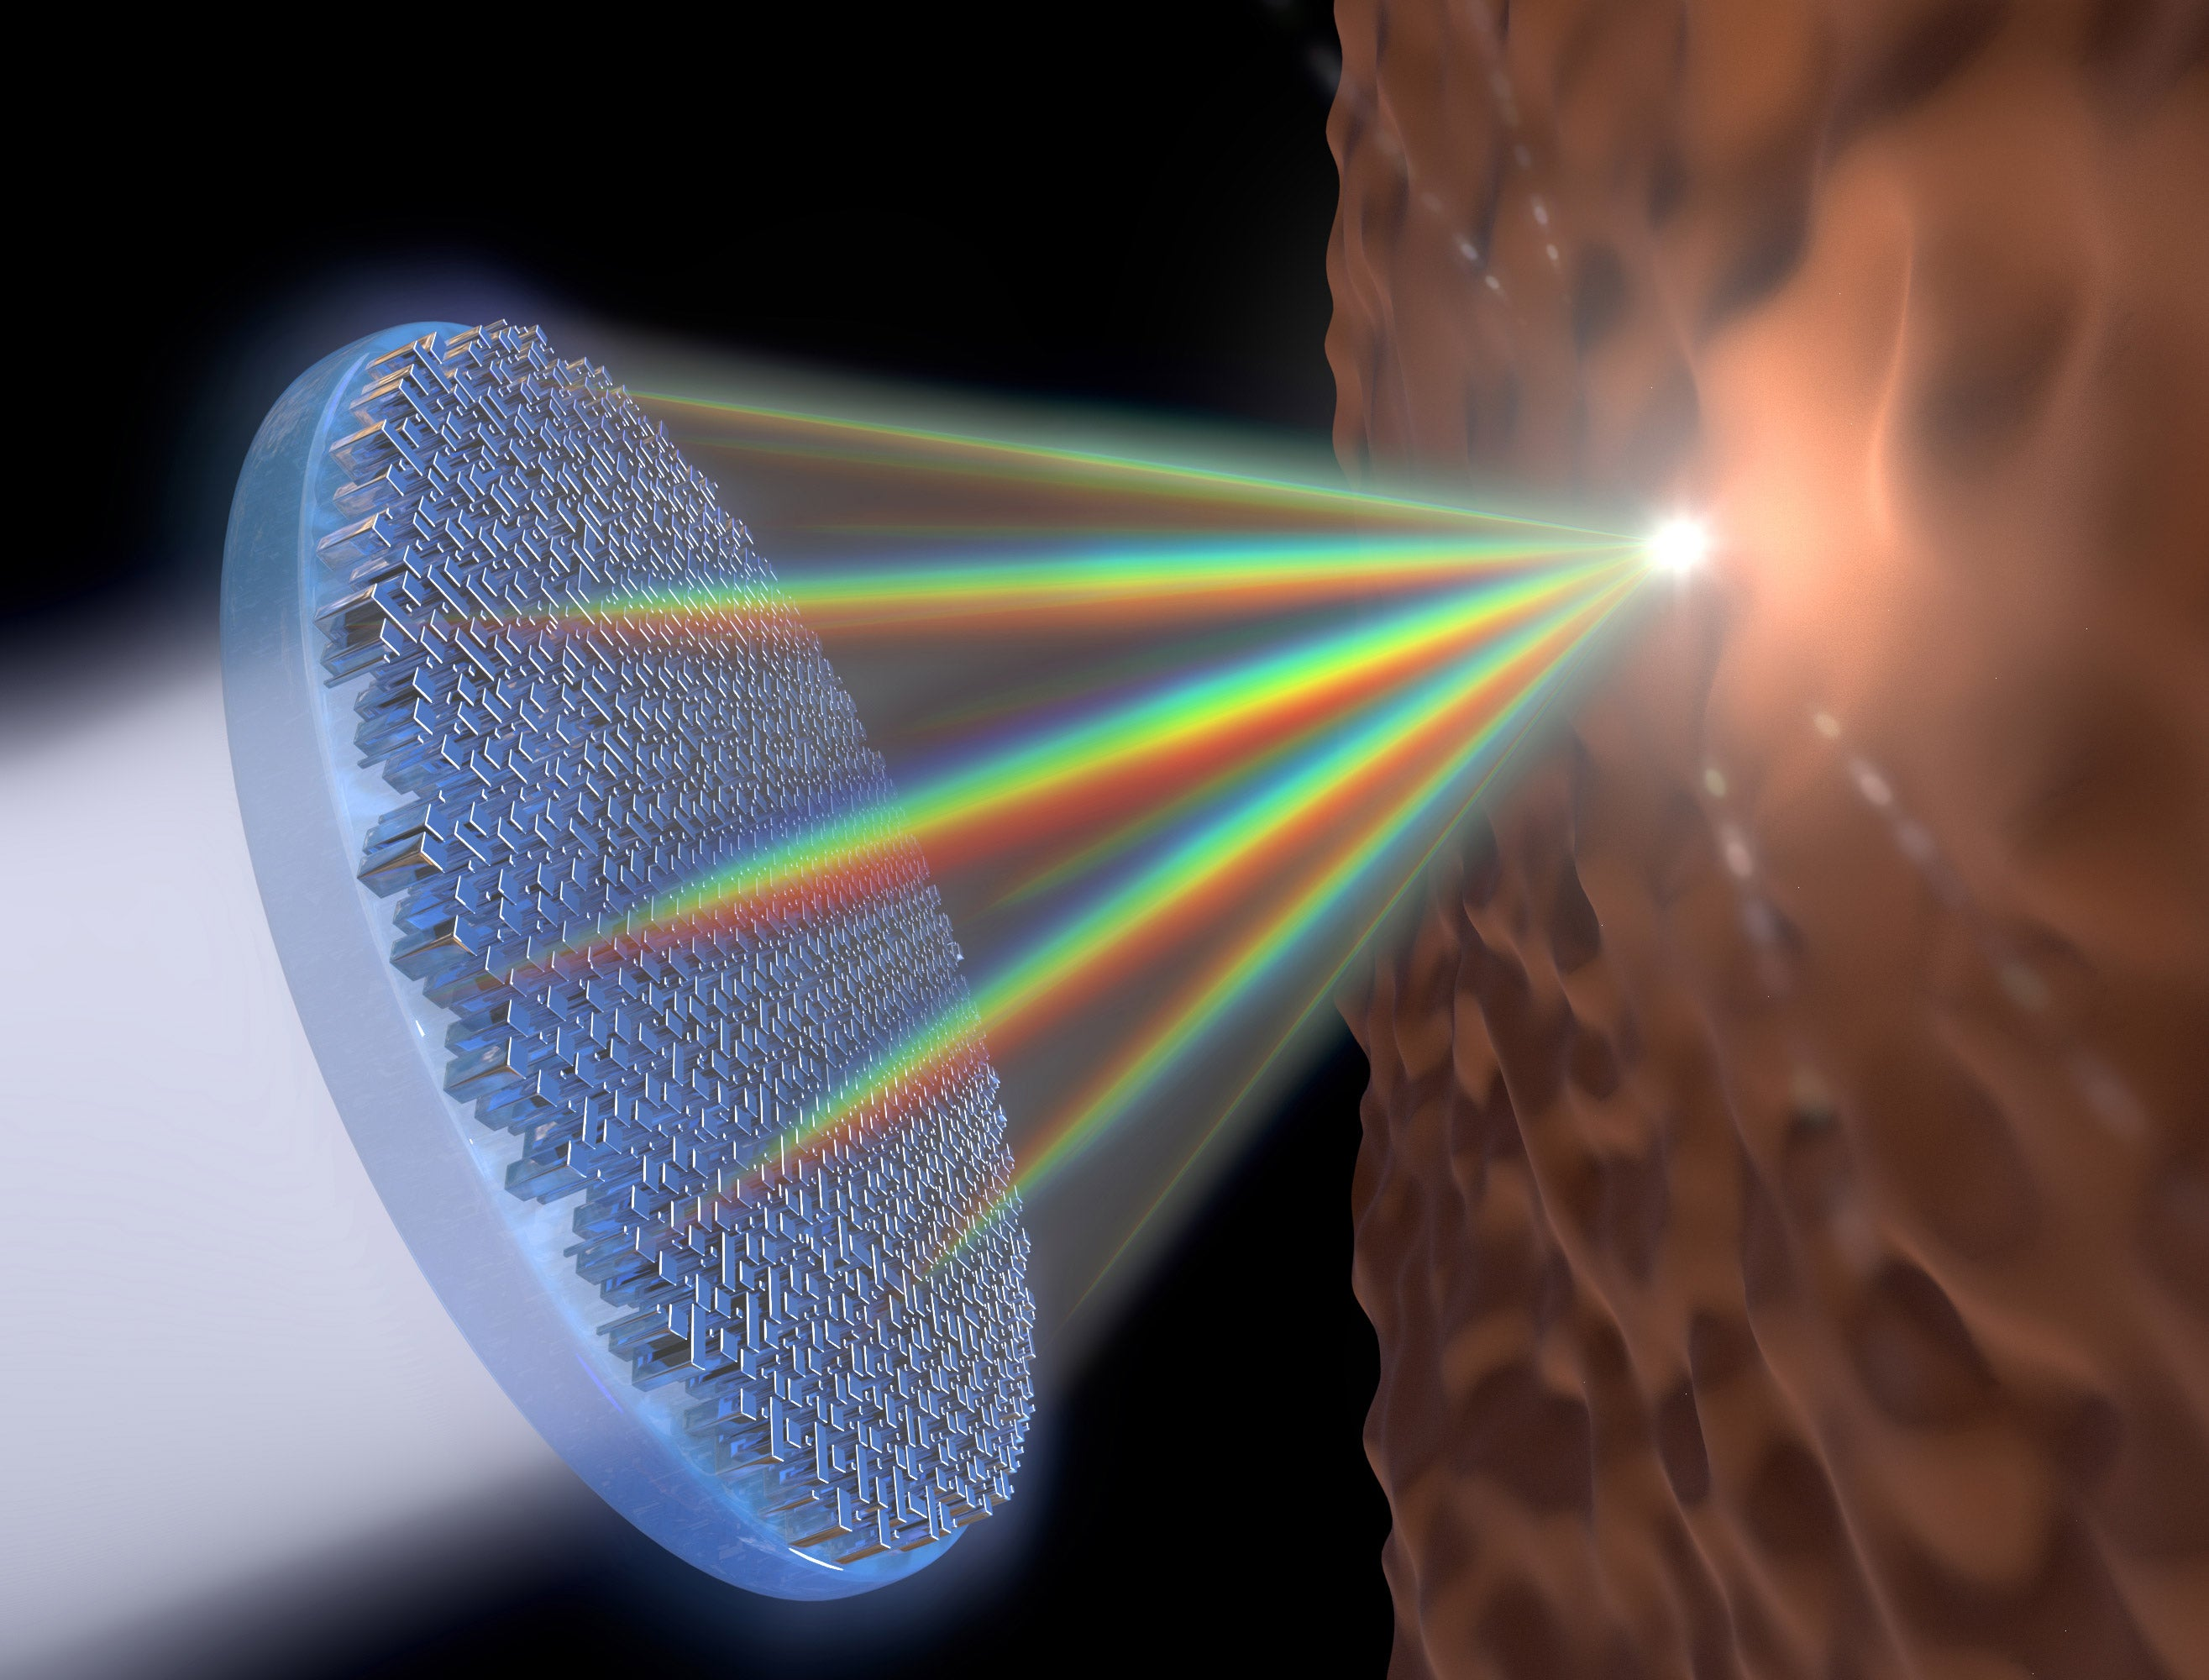 This flat metalens is the first single lens that can focus the entire visible spectrum of light — including white light — in the same spot and in high resolution. It uses arrays of titanium dioxide nanofins to equally focus wavelengths of light and eliminate chromatic aberration.